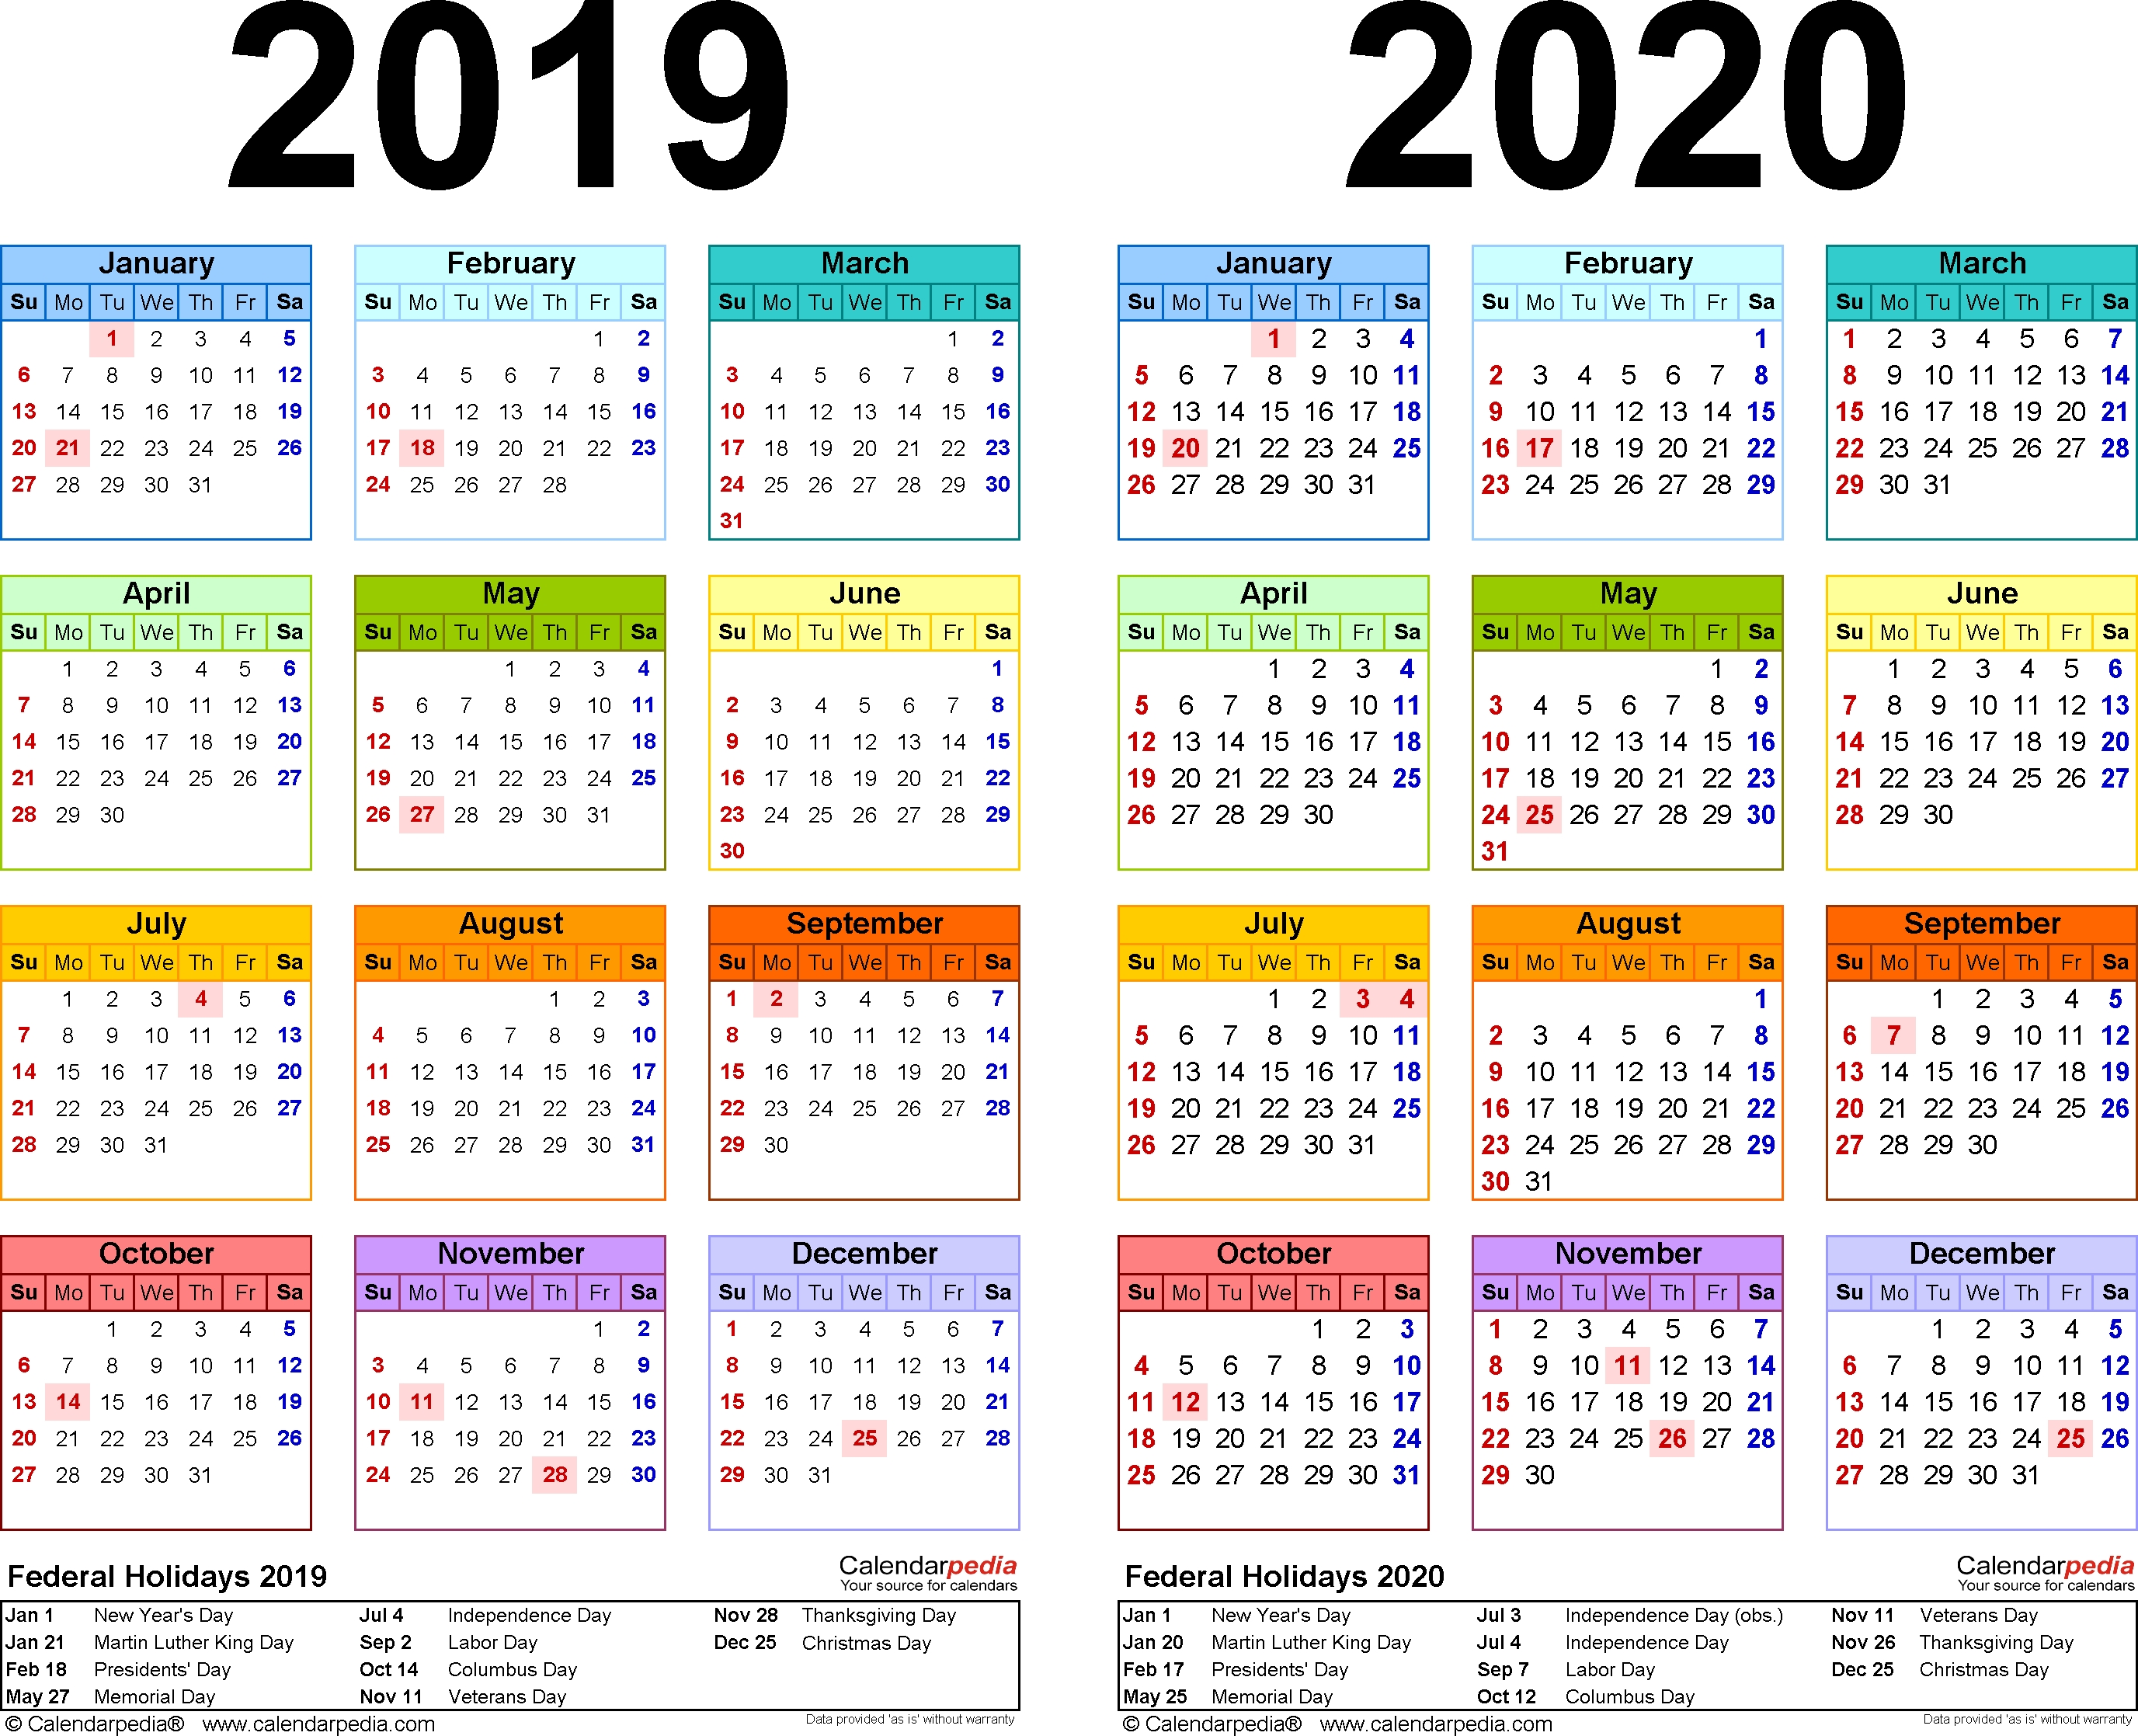 2019-2020 Calendar - Free Printable Two-Year Pdf Calendars_Blank Calendar Canada 2020